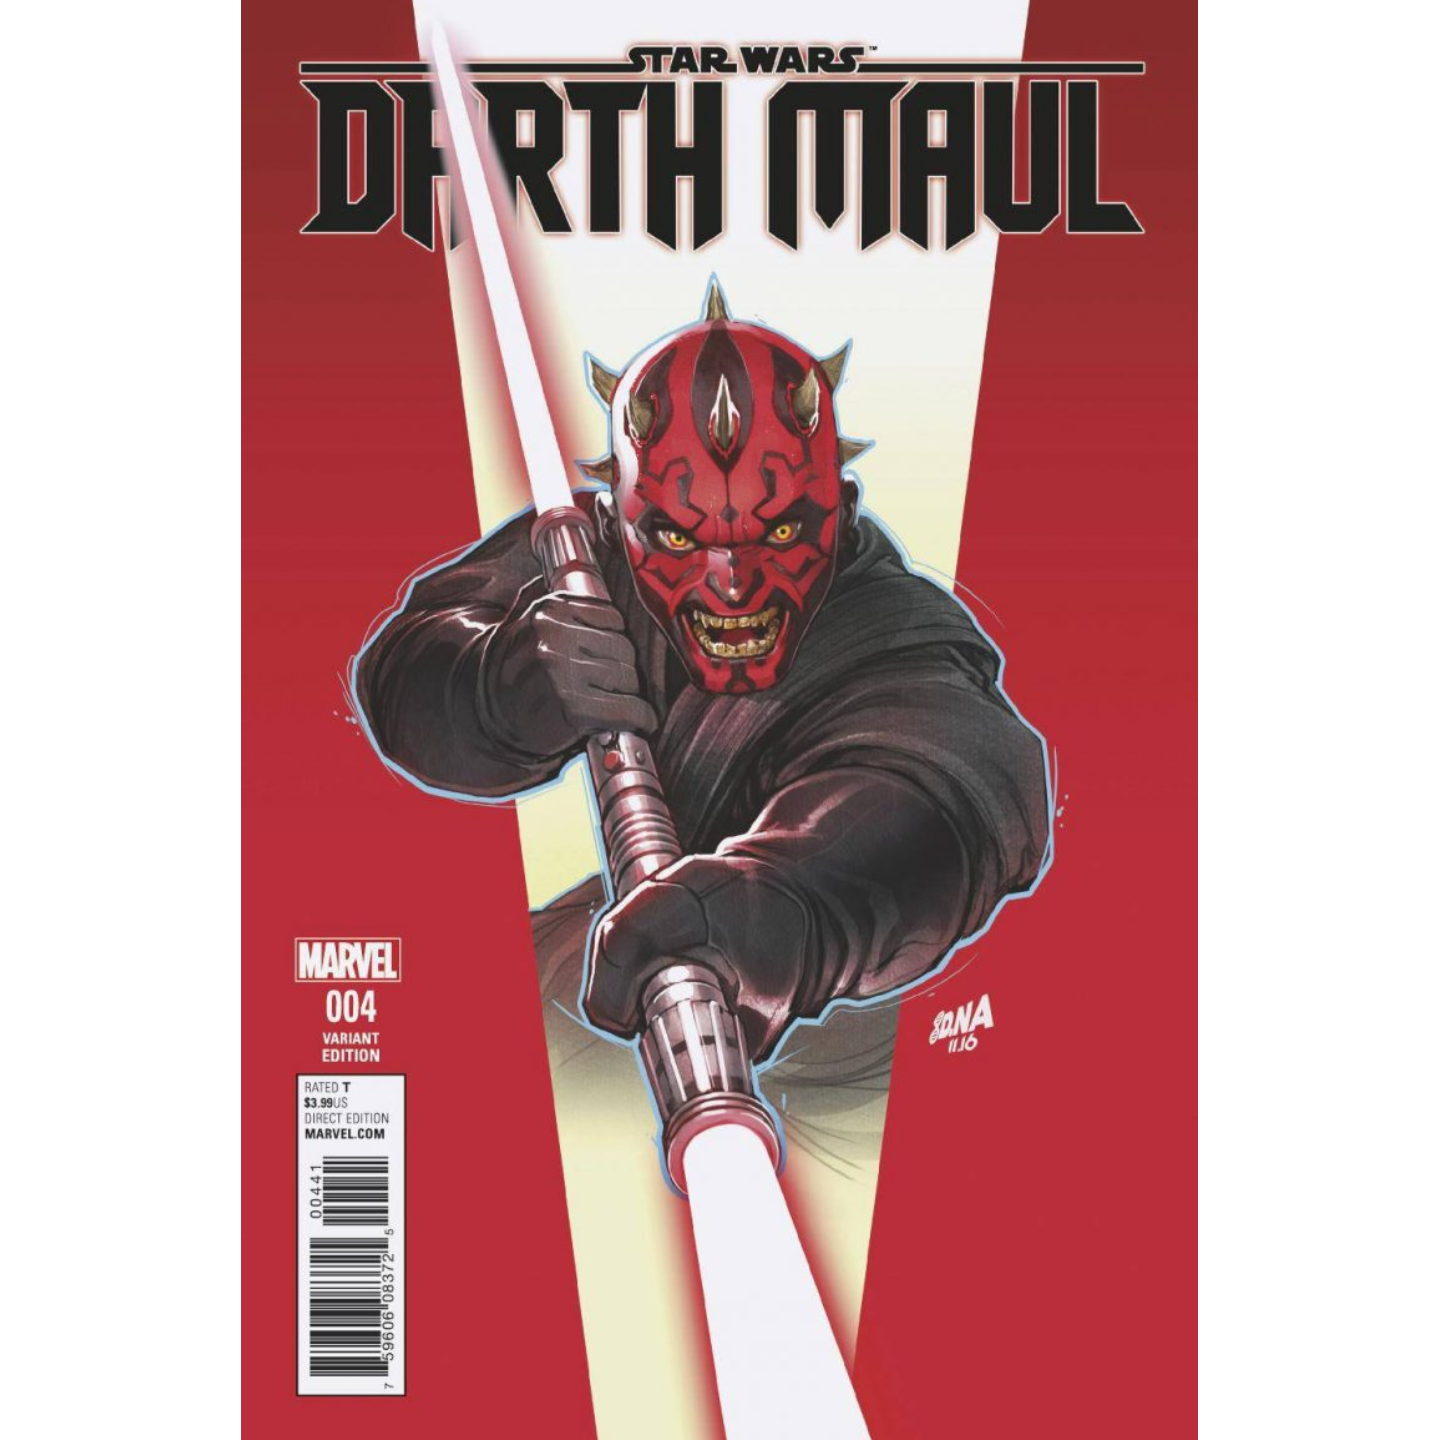 STAR WARS: DARTH MAUL #4 - DAVID NAKAYAMA